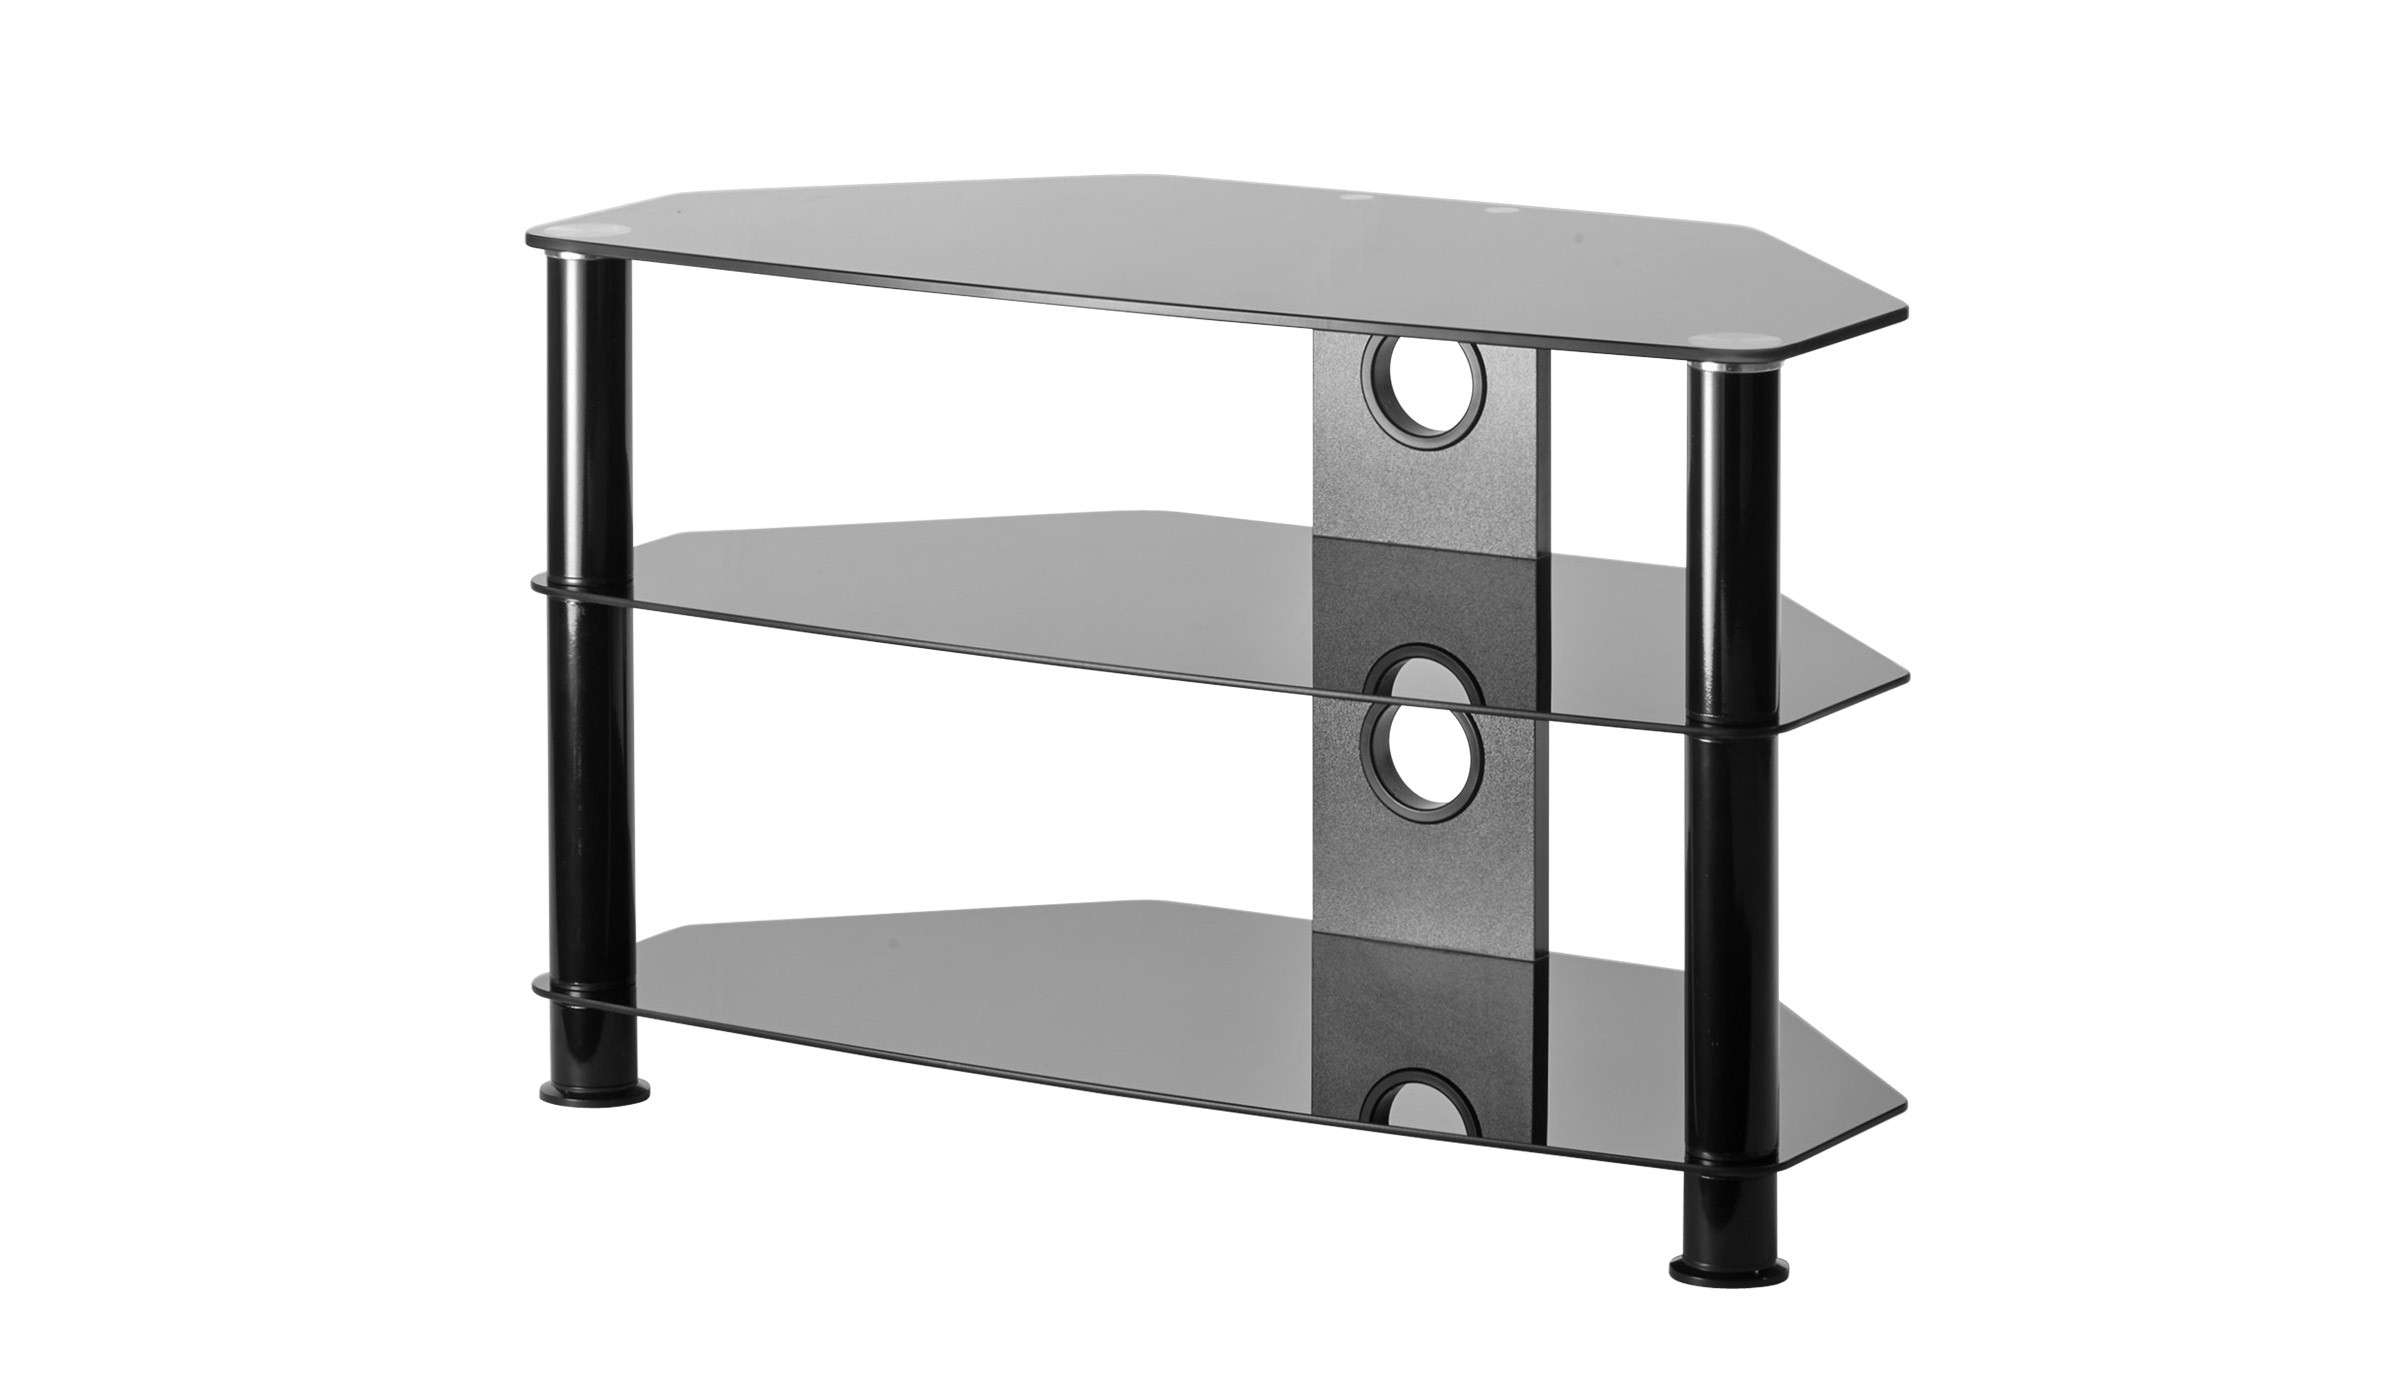 Black Glass Corner Tv Stand Up To 37 Inch Tv | Mmt Db800 Intended For Black Glass Tv Stands (View 12 of 15)